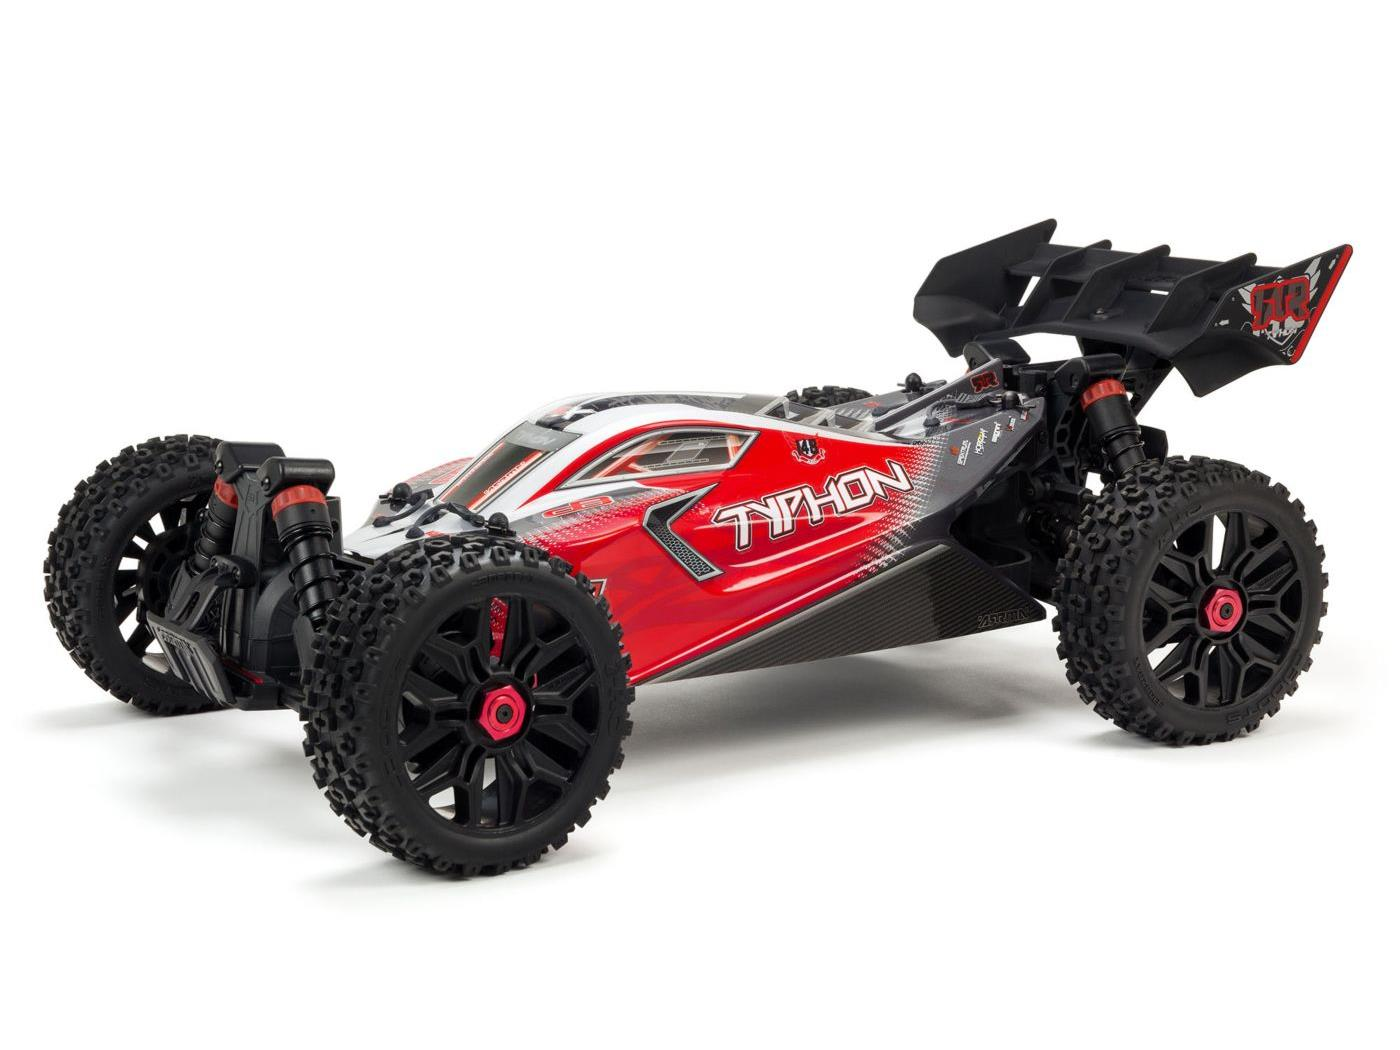 Arrma Typhon 3S BLX 4WD Speed Buggy ARTR